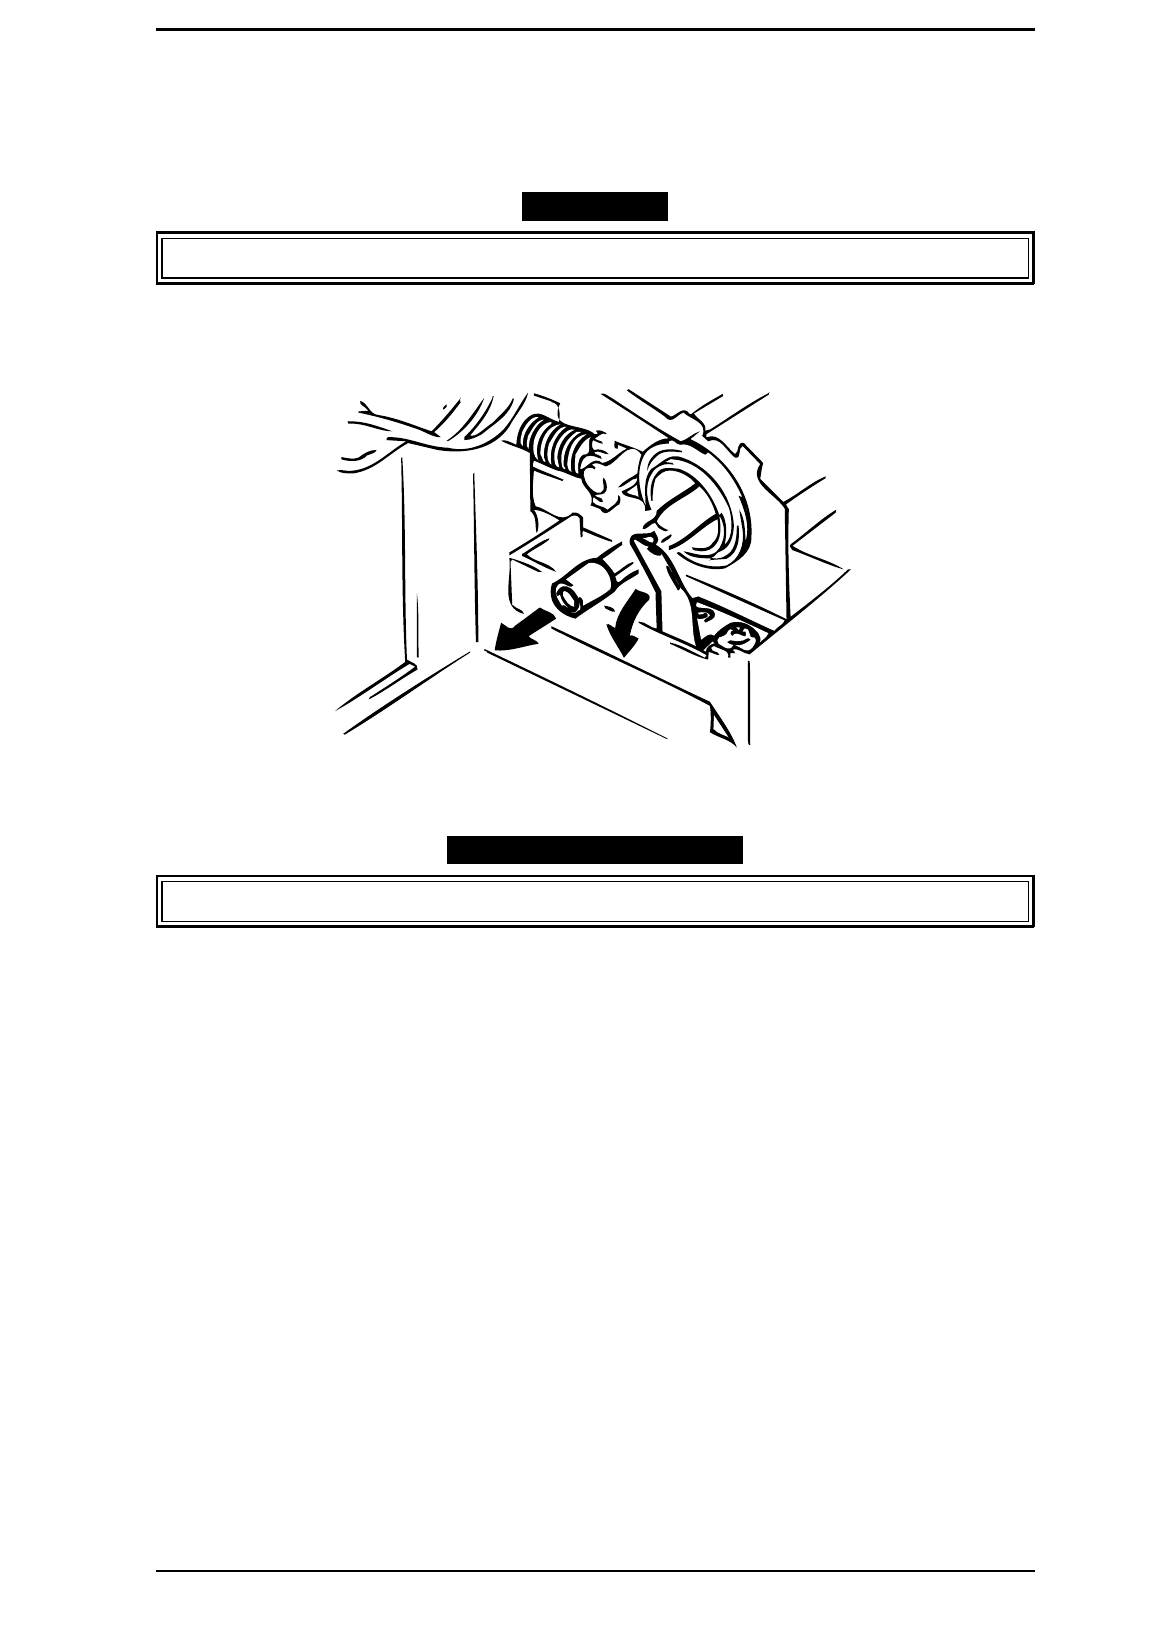 Epson Epl 5500 Users Manual 2g Fuse Box Layouts Merged 77 Cover Map Fuses Diagram Location 3237 Fusing Unit Disassembly